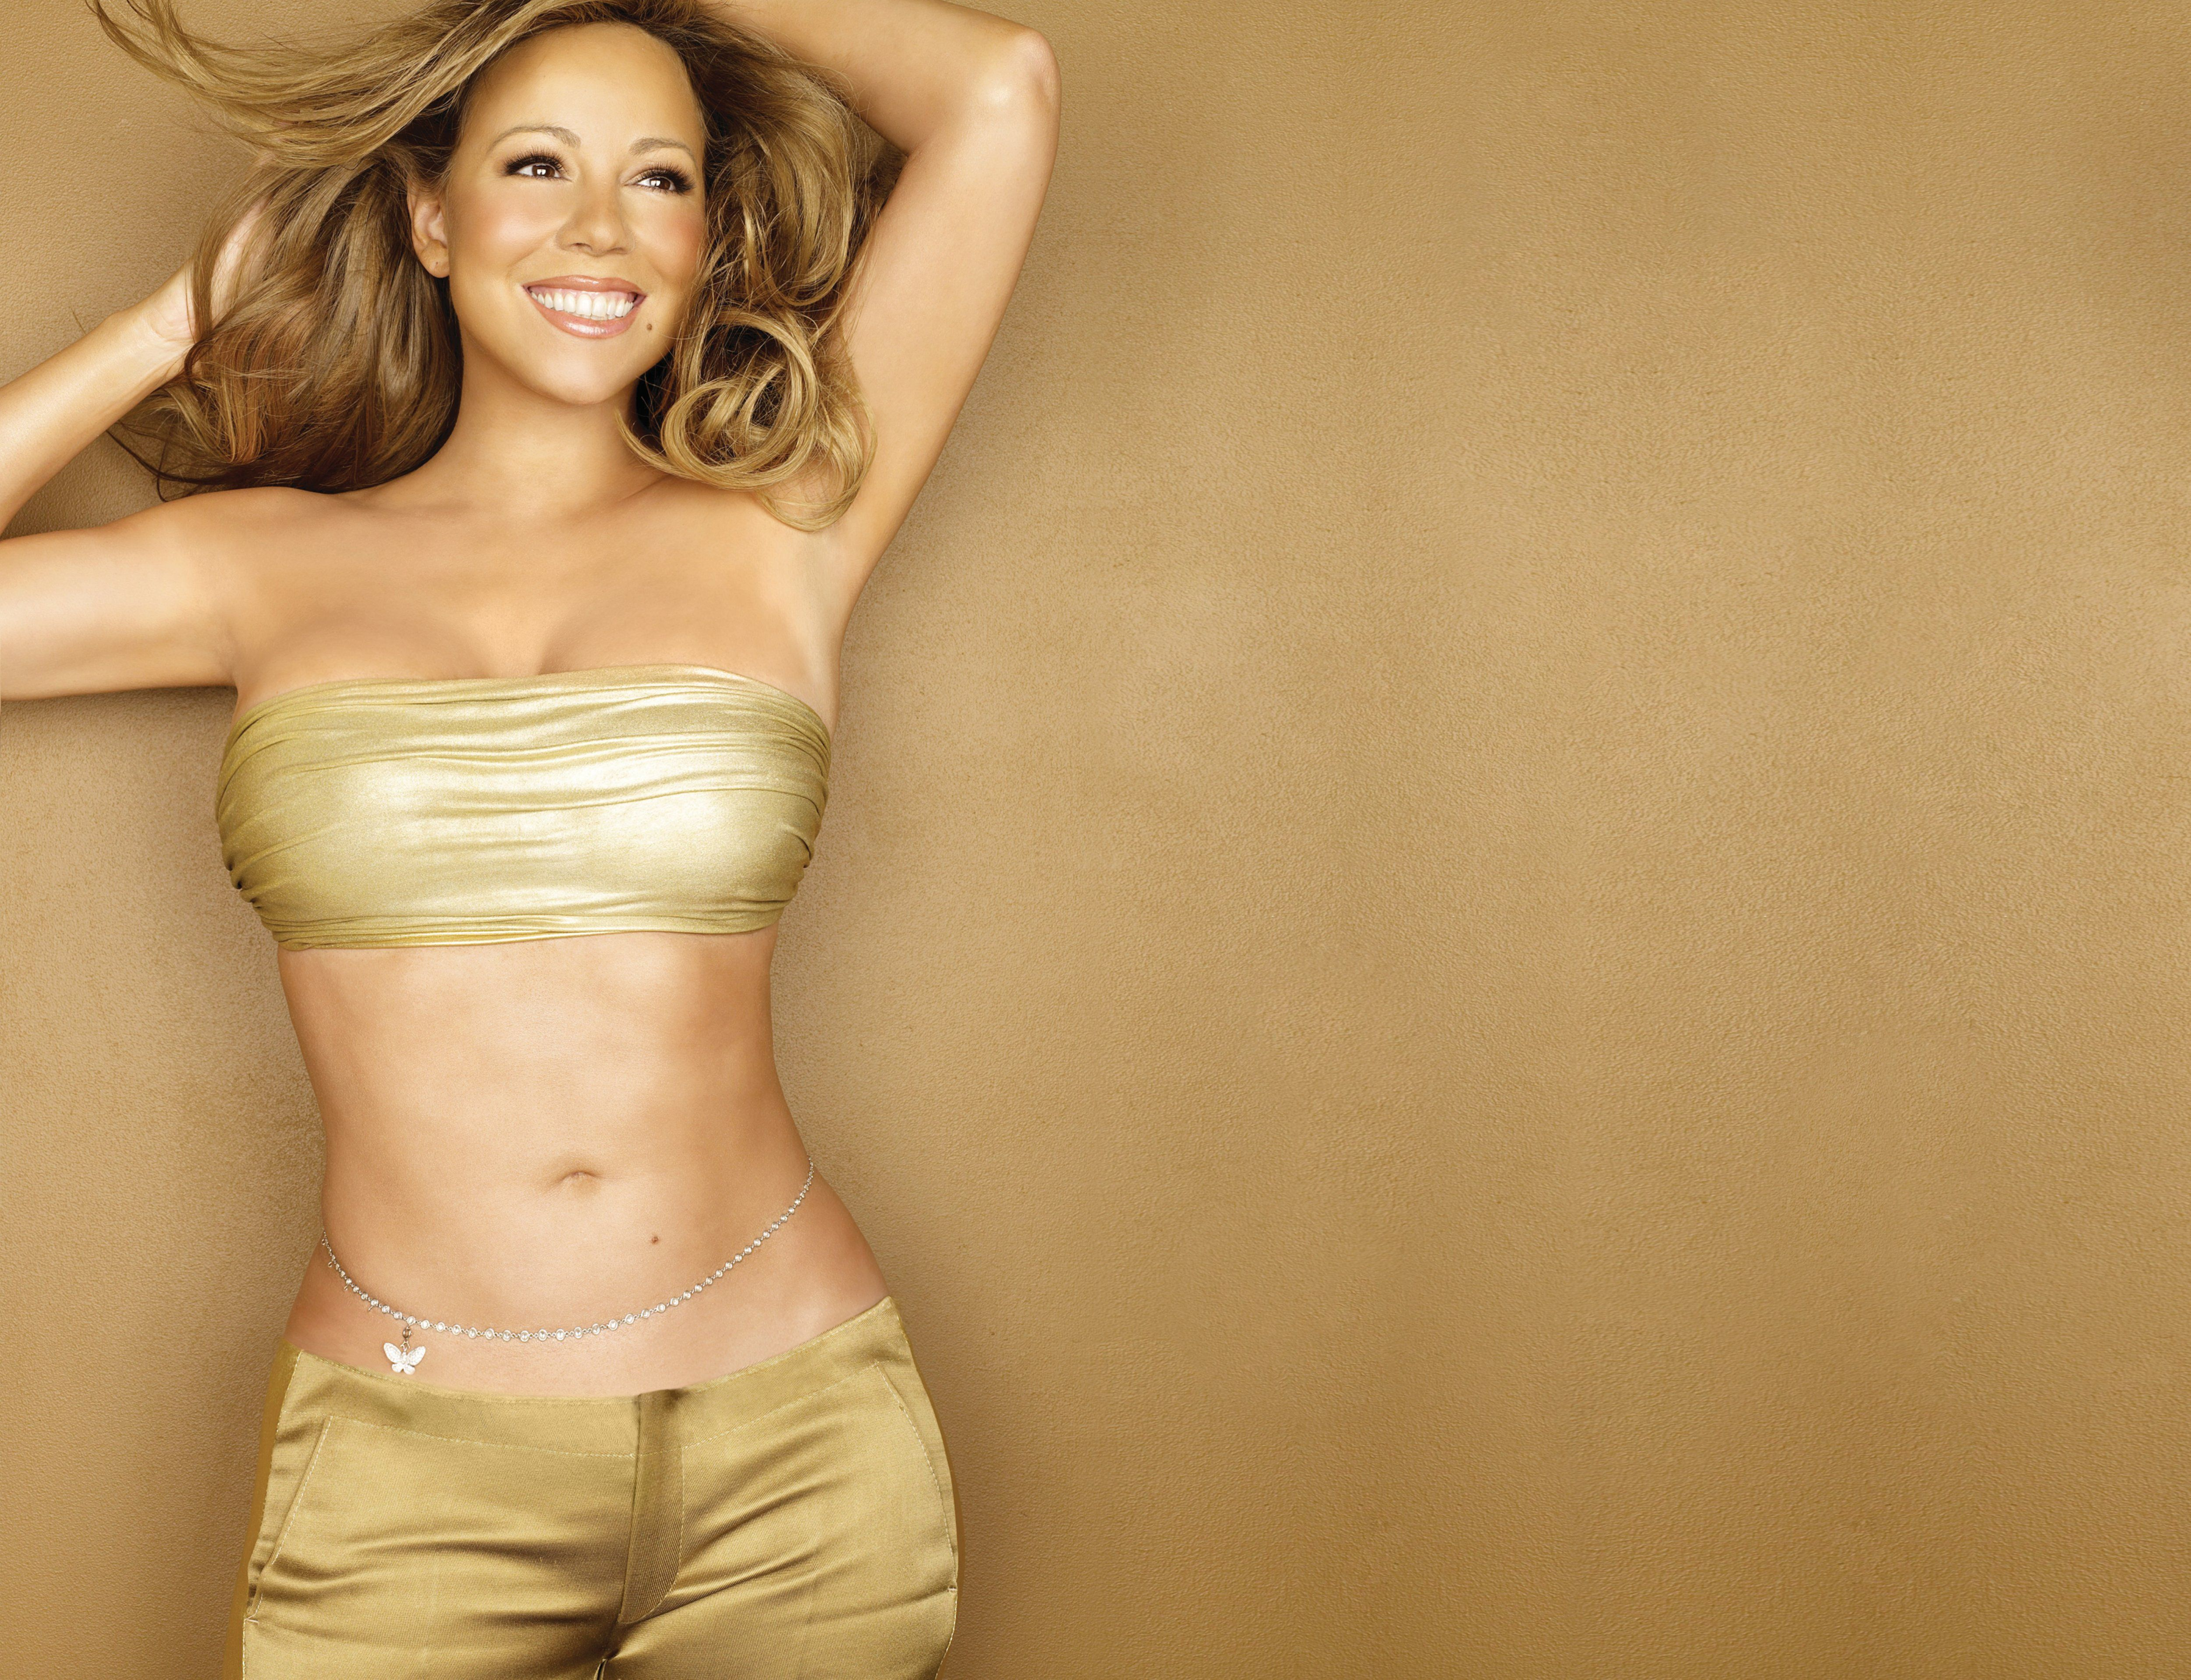 Mariah Carey Wallpaper Mariah Carey Mariah Carey